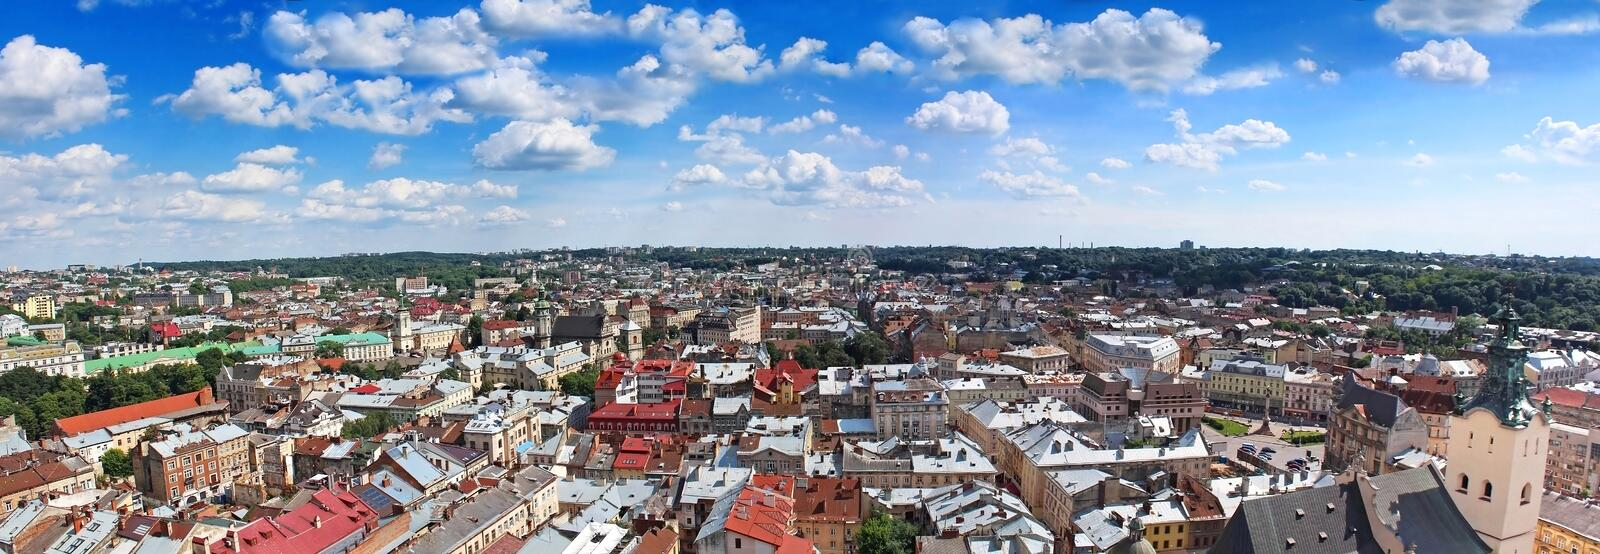 Panorama of Lviv, Ukraine royalty free stock photos